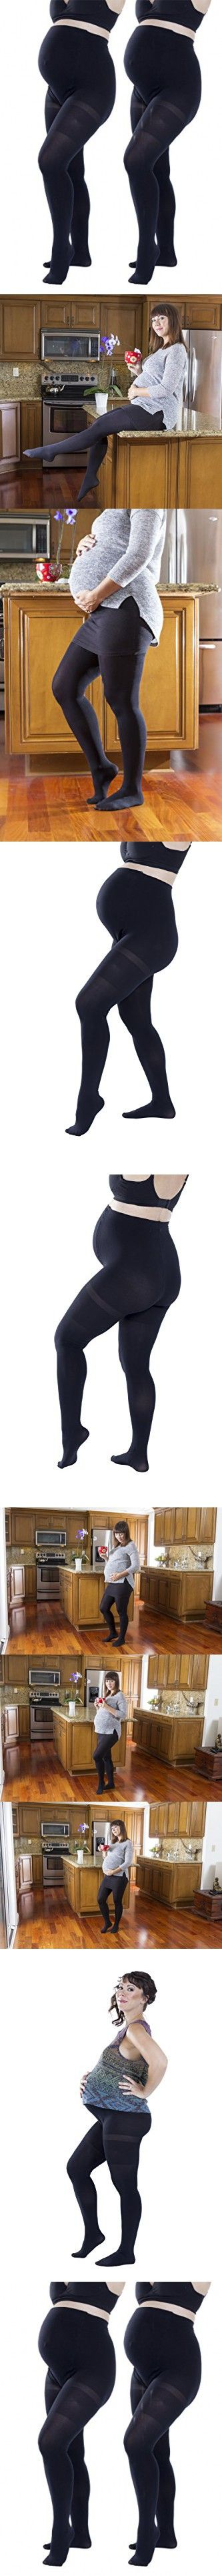 2 Pack of Felicity Opaque Maternity Tights, Won't Fall Down (S/M, Black)